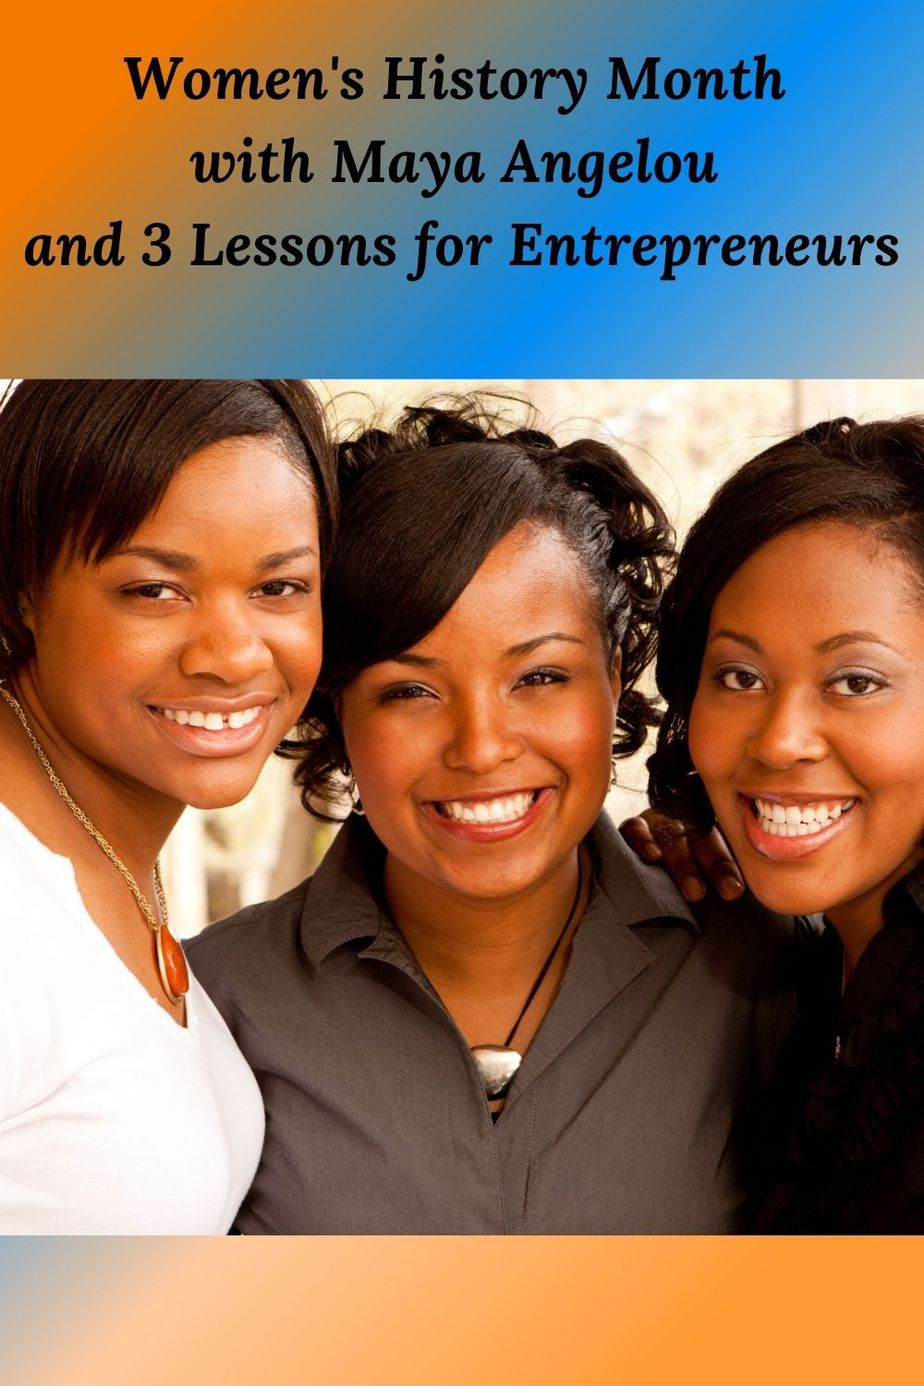 Women's History Month with Maya Angelou and 3 Lessons for Entrepreneurs